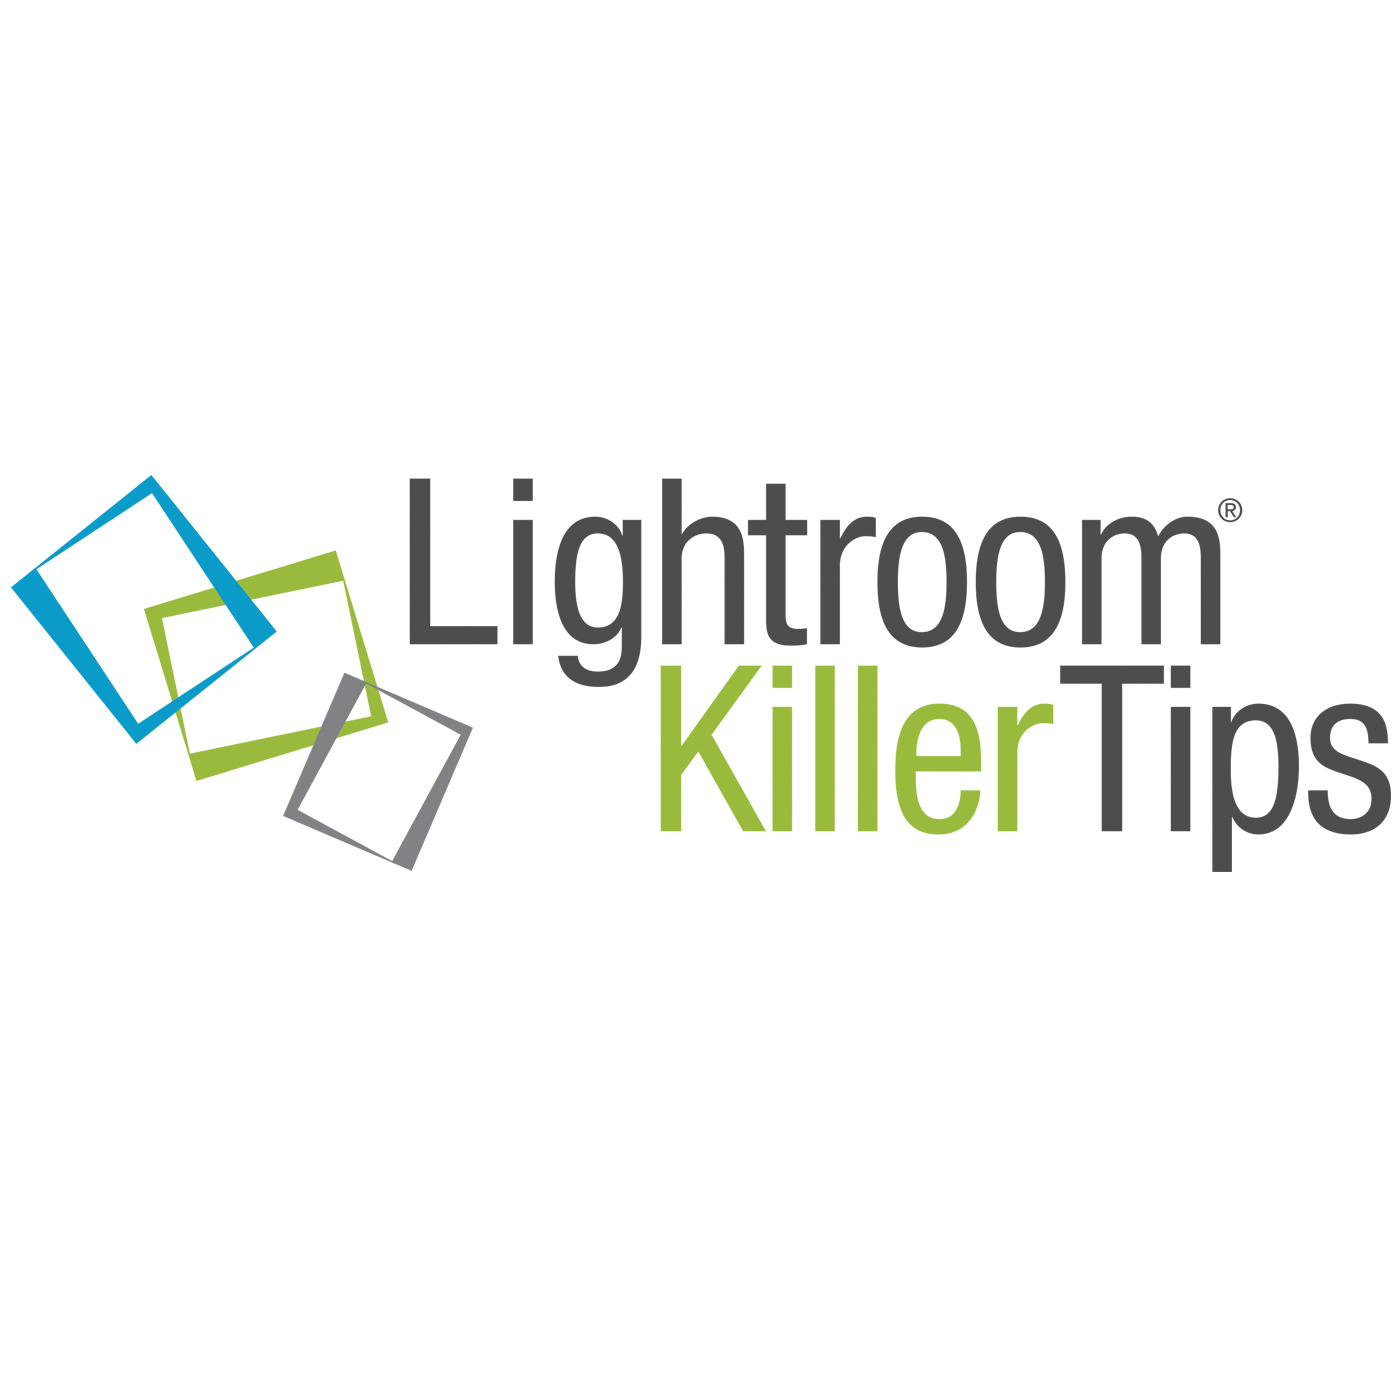 Lightroom Killer Tips